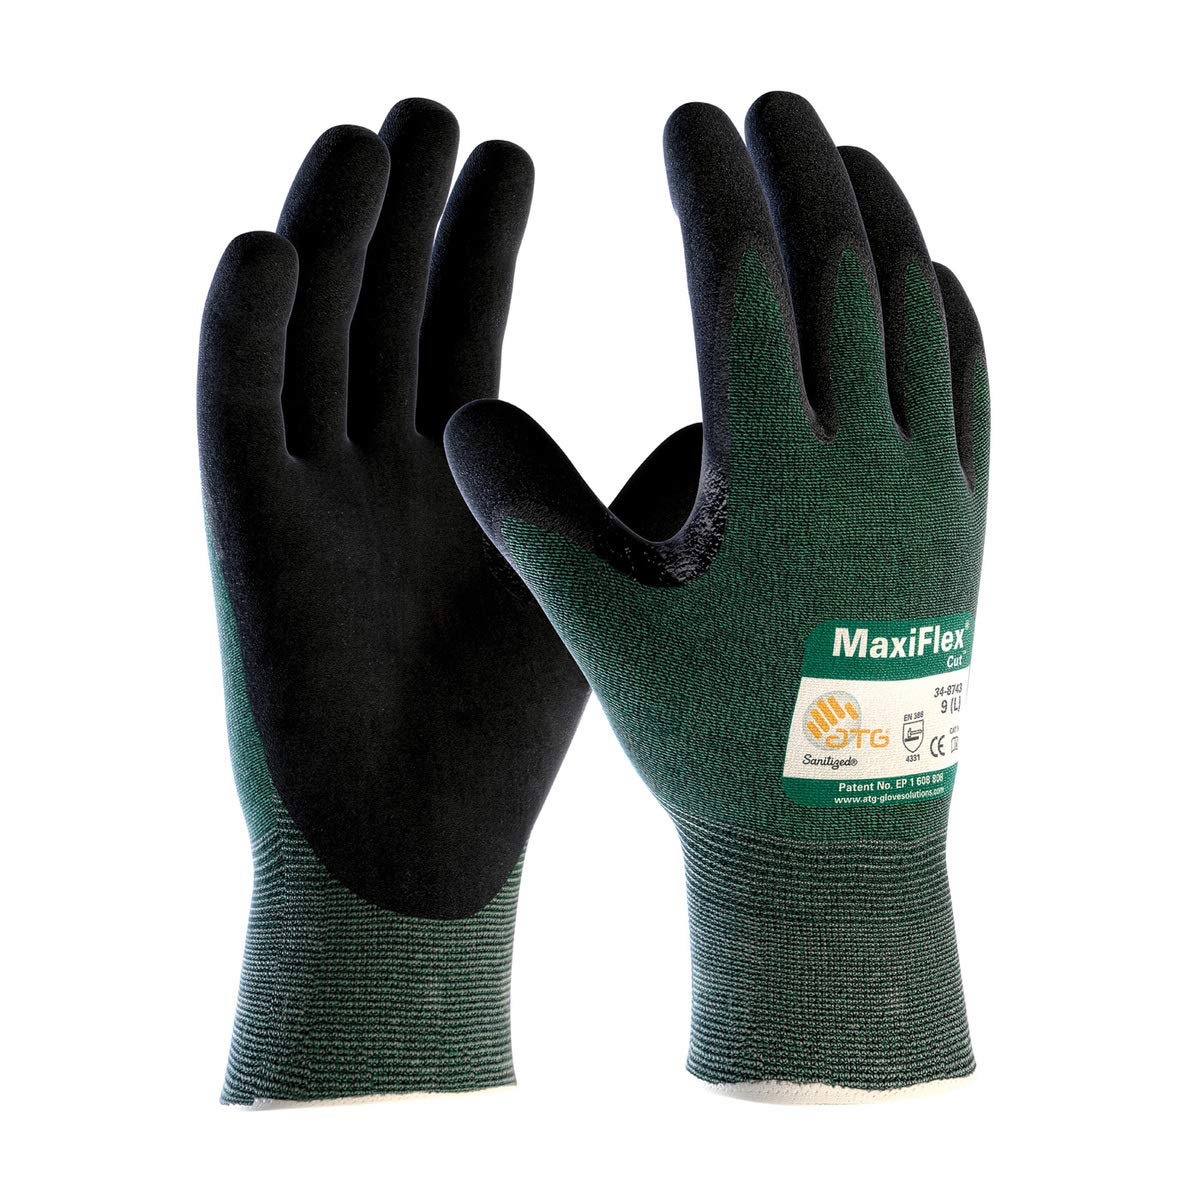 Protective Industrial Products Size 3X MaxiFlex Cut by ATG Nitrile Work Gloves With Engineered Yarn Liner And Knit Wrist - Pack of 12